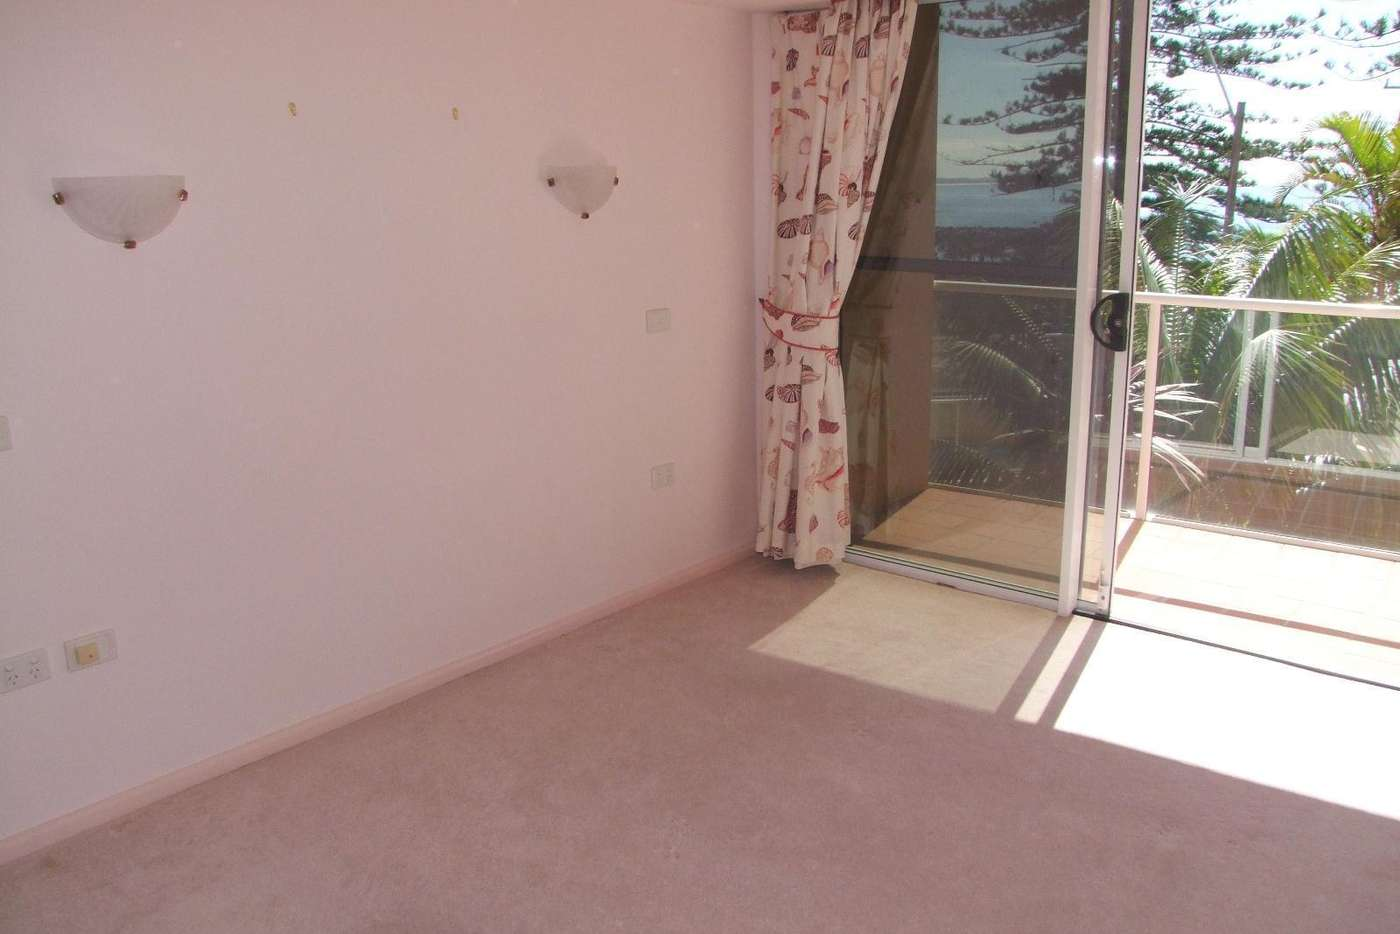 Sixth view of Homely unit listing, 7/5 Stewart Street, Port Macquarie NSW 2444